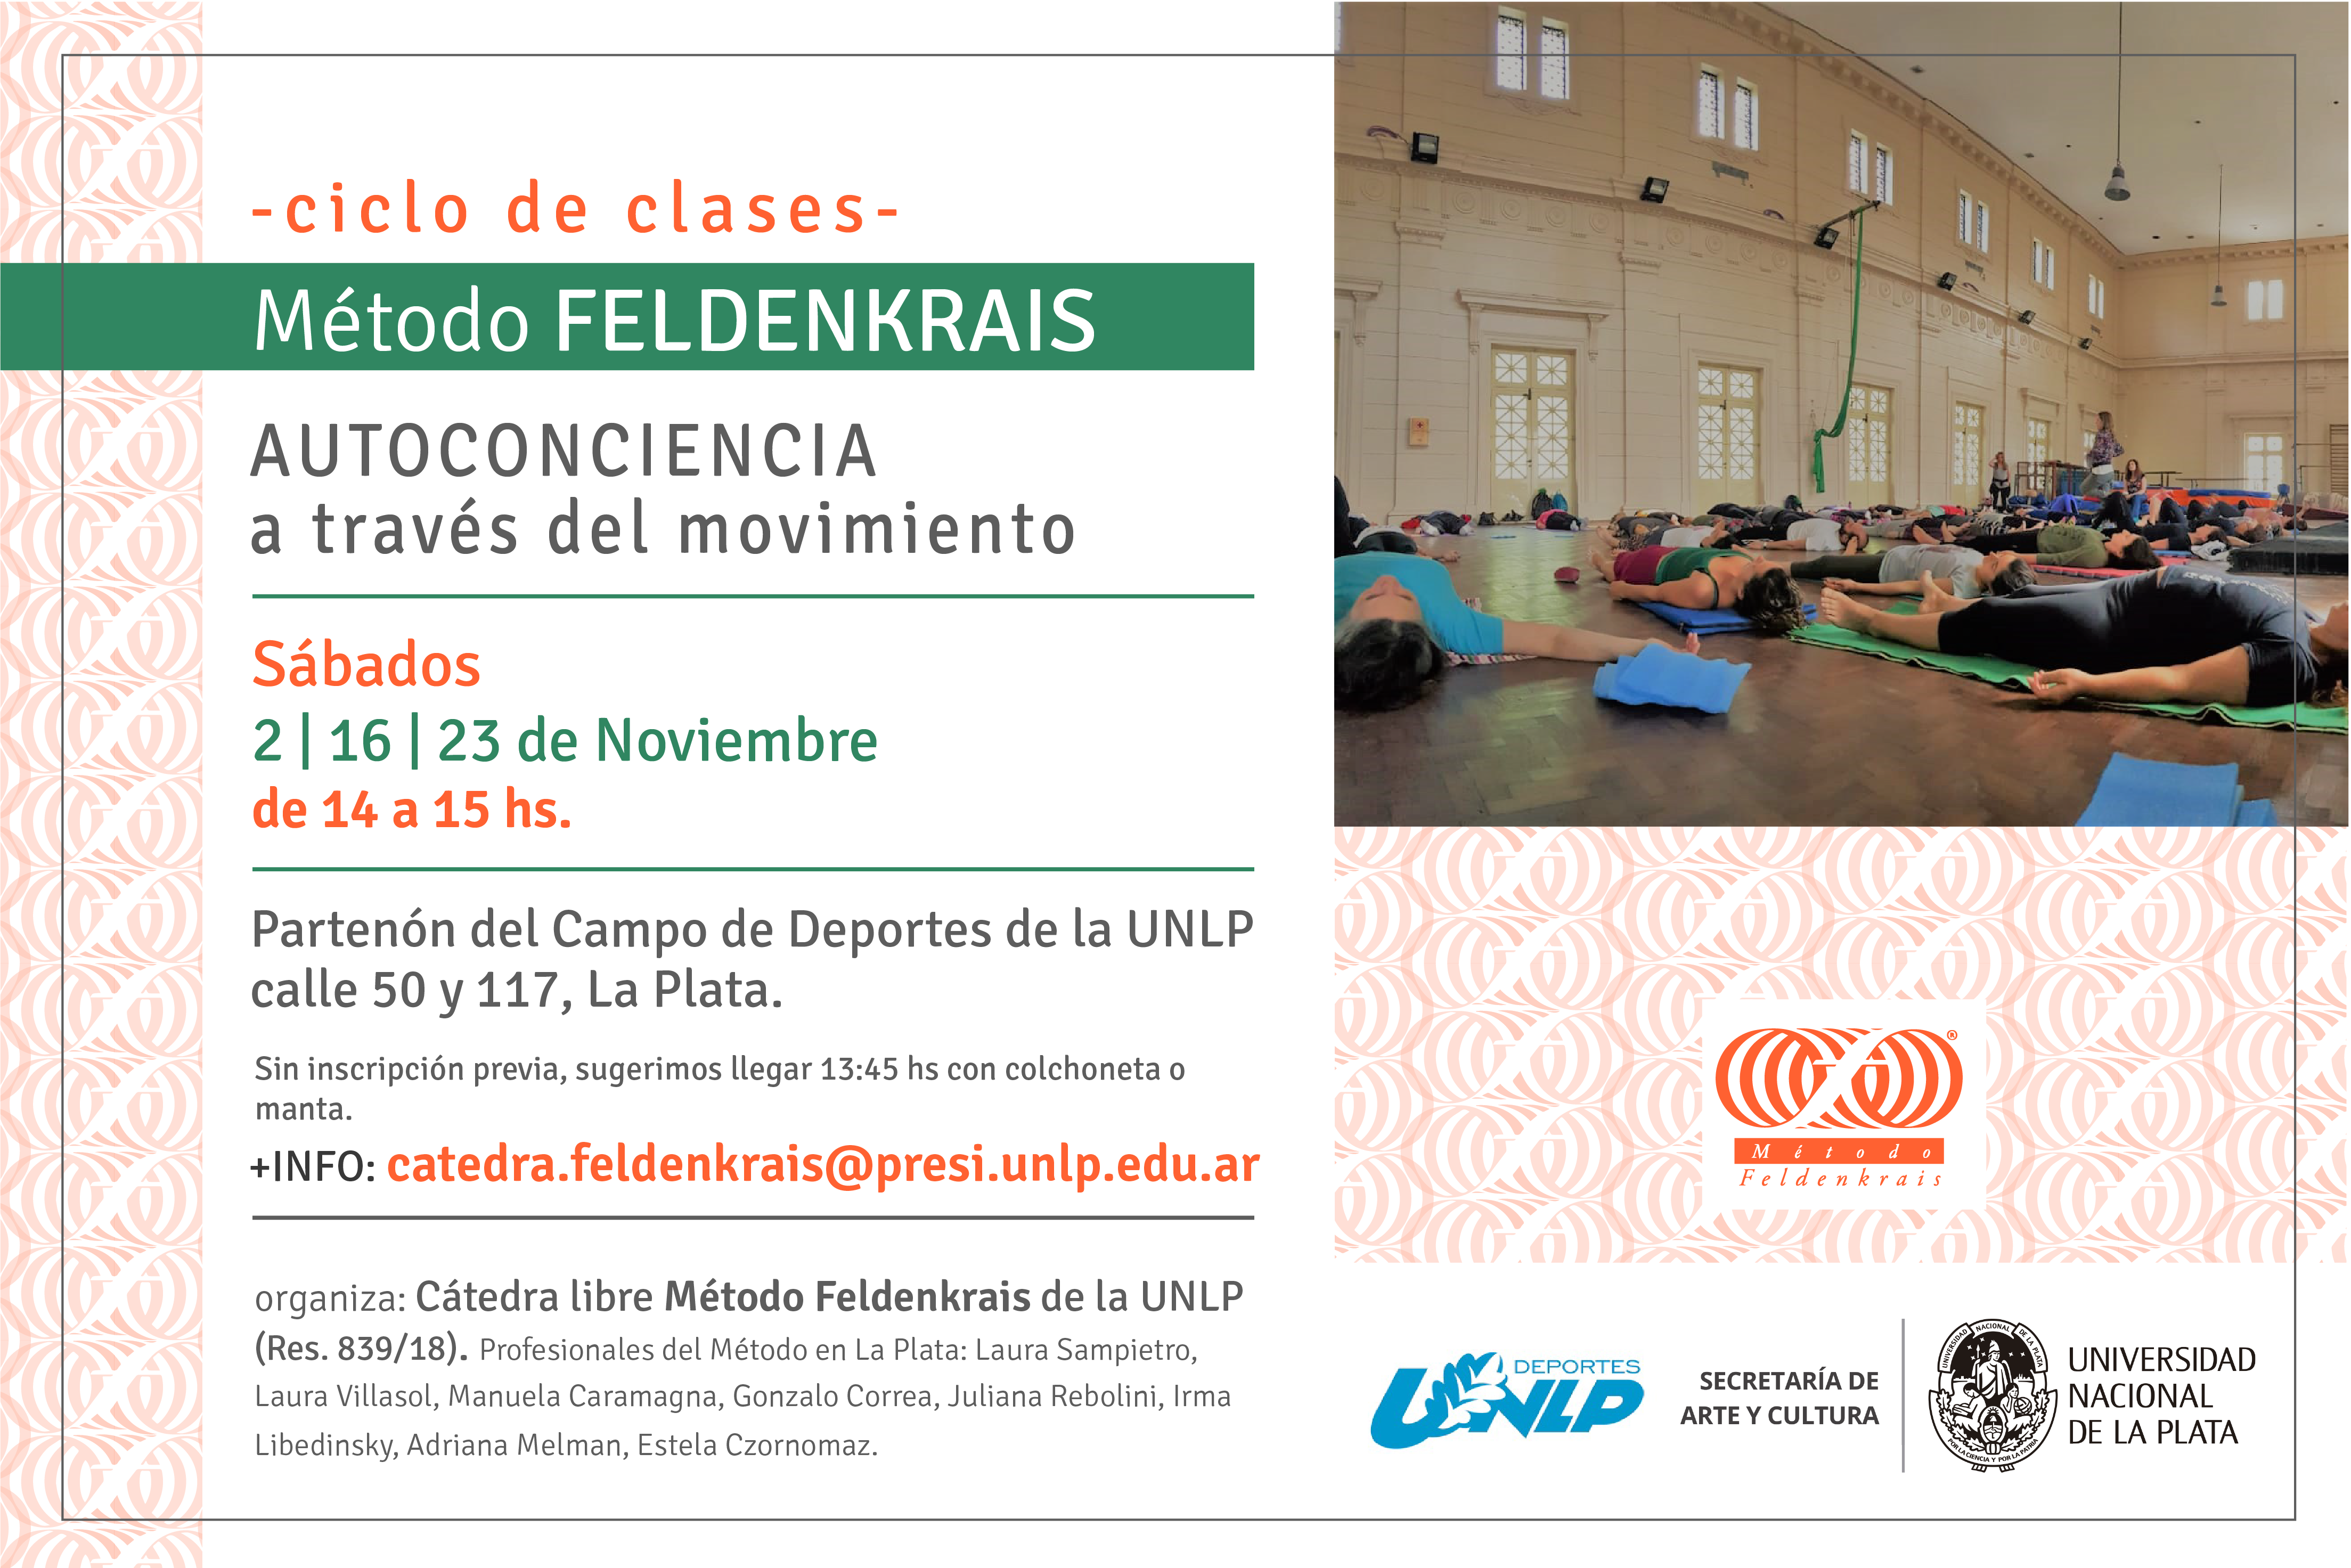 clases noviembre 2019-01-01-01.png